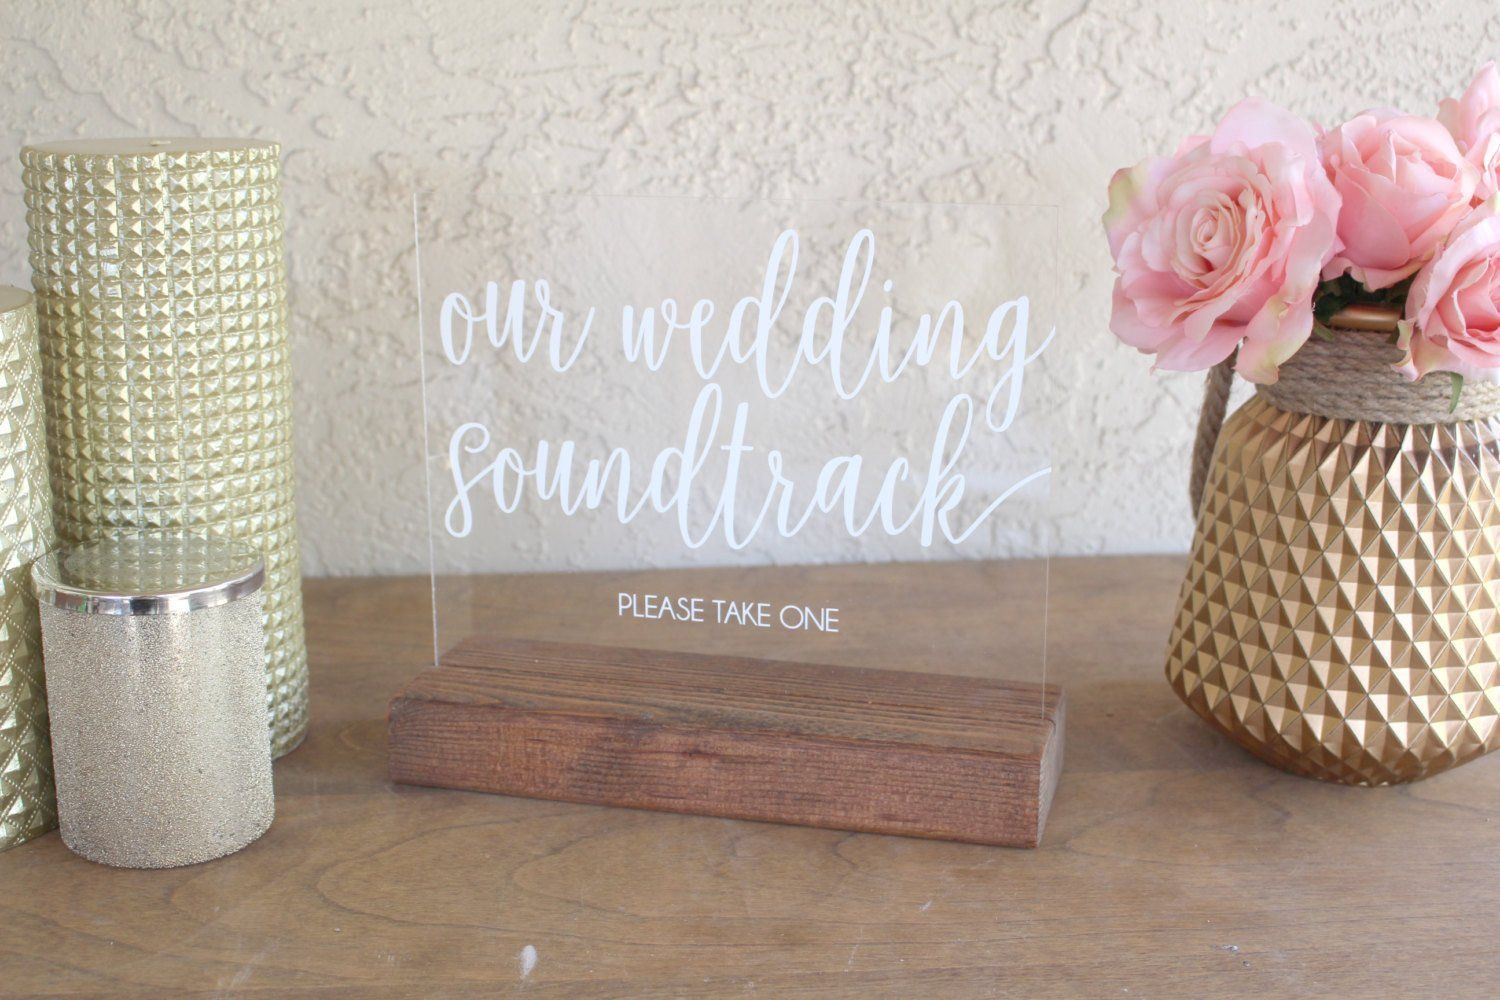 Wedding Soundtrack CD Favor Acrylic Sign | Soundtrack, Acrylics and ...